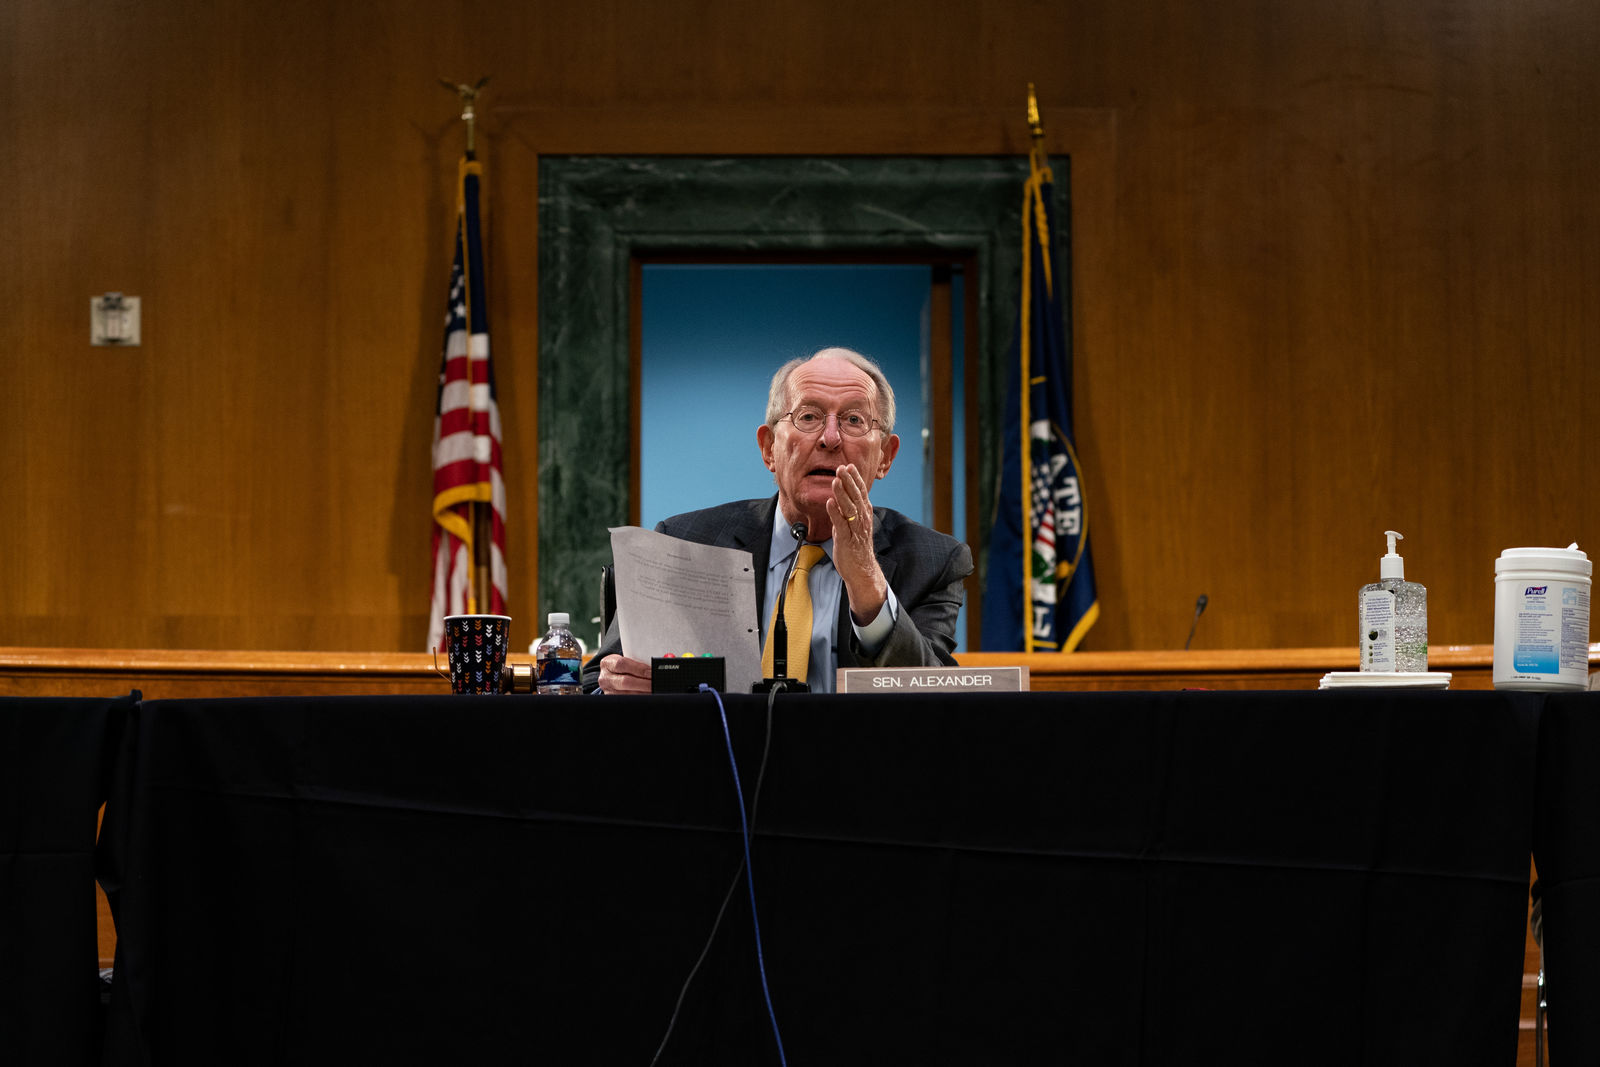 Chairman Lamar Alexander, R-Tenn., gives his closing remarks at a Senate Health Education Labor and Pensions Committee hearing on new coronavirus tests May 7th, 2020 on Capitol Hill in Washington DC. (Photo by Anna Moneymaker-Pool/Getty Images)